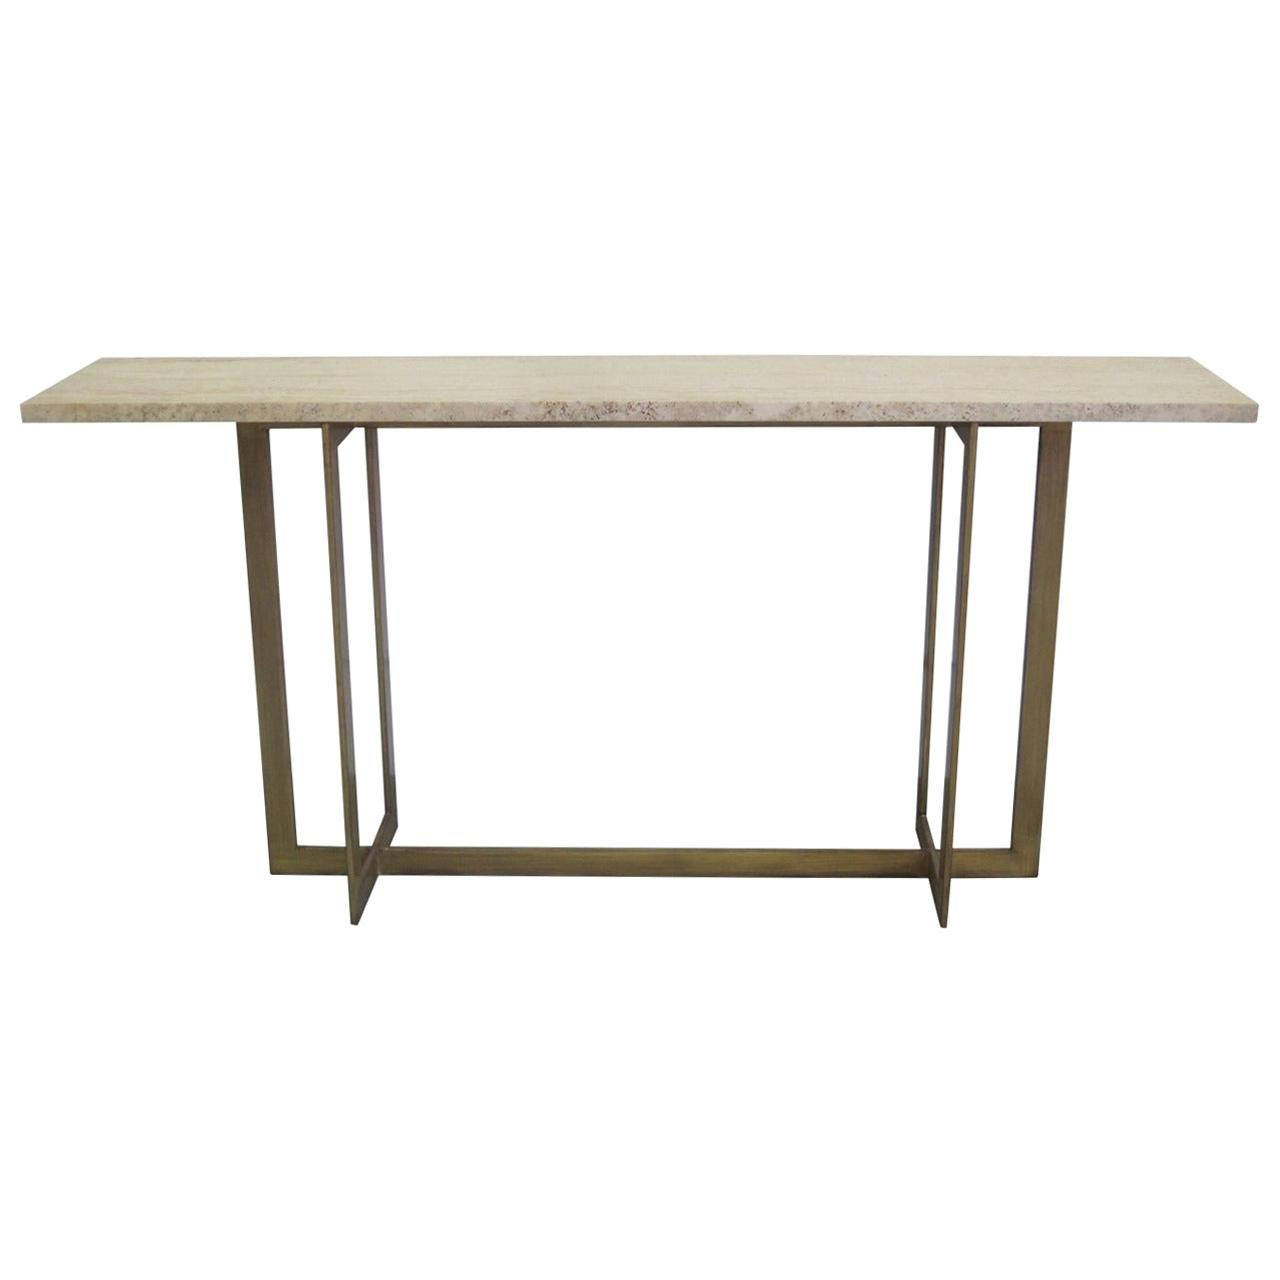 Large French Mid-Century Modern Gilt Wrought Iron Console, Jacques Quinet